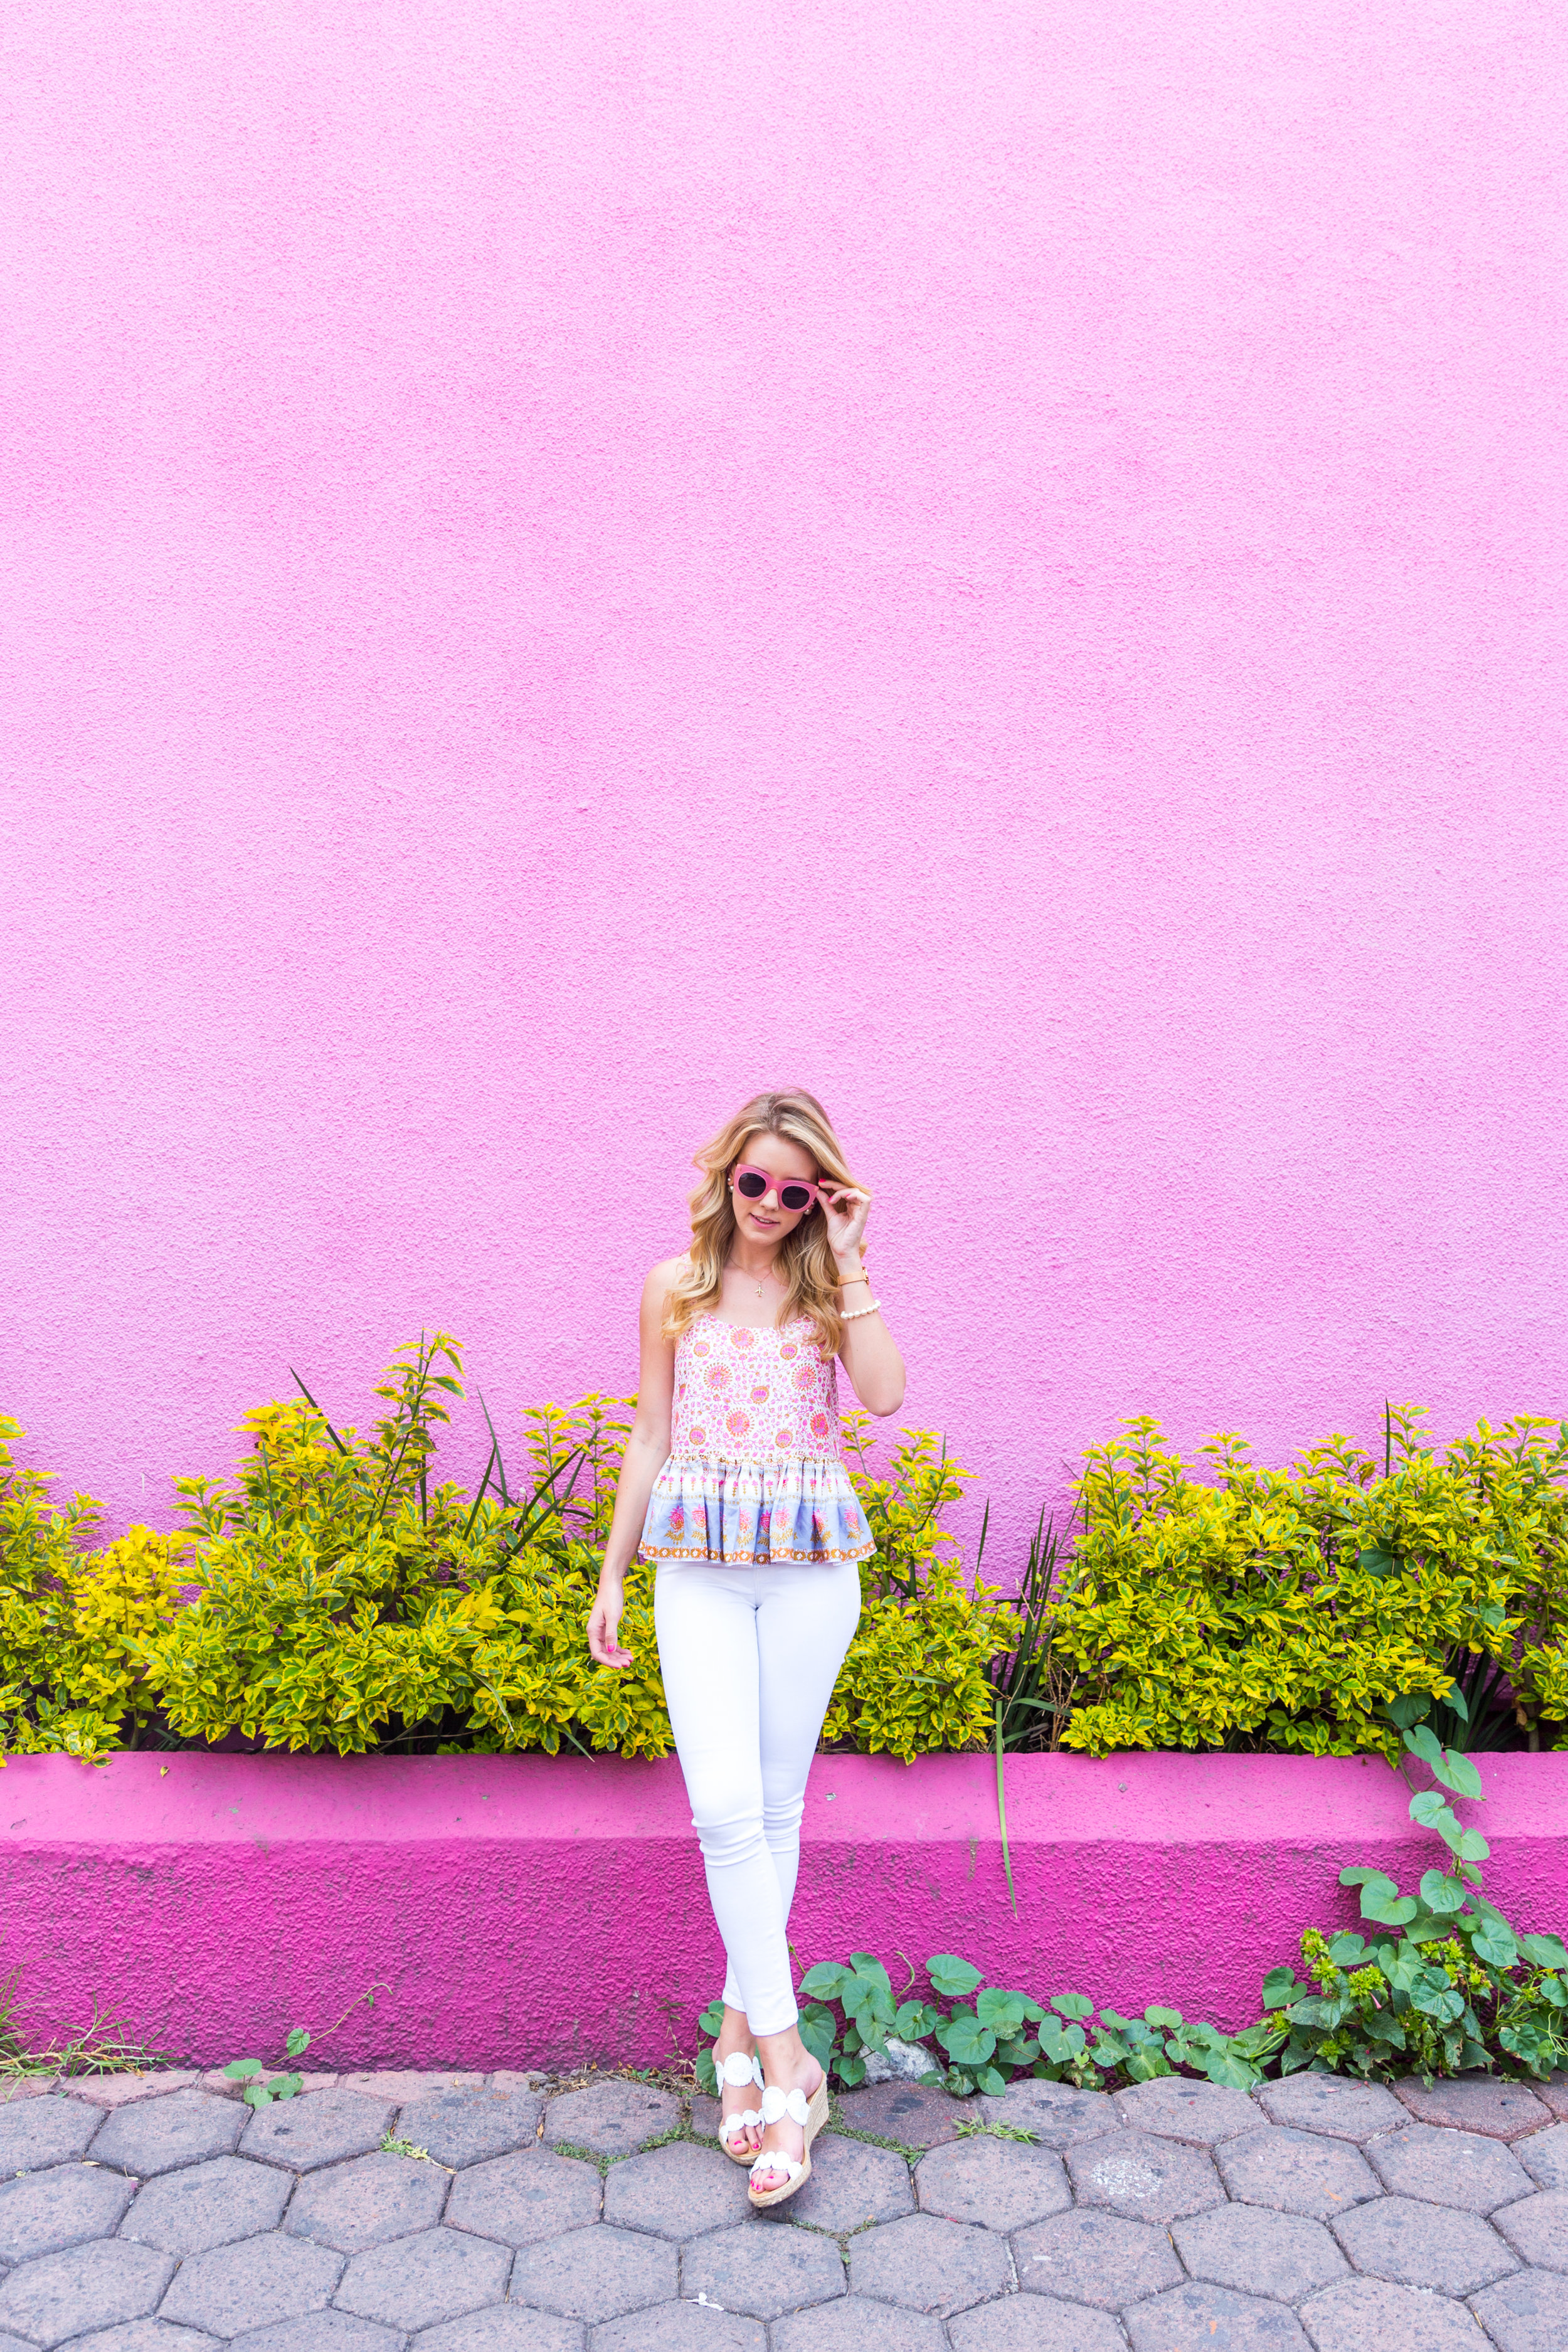 Mexico City Pink Wall Summer Outfit White Jeans Peplum Cami-2.jpg